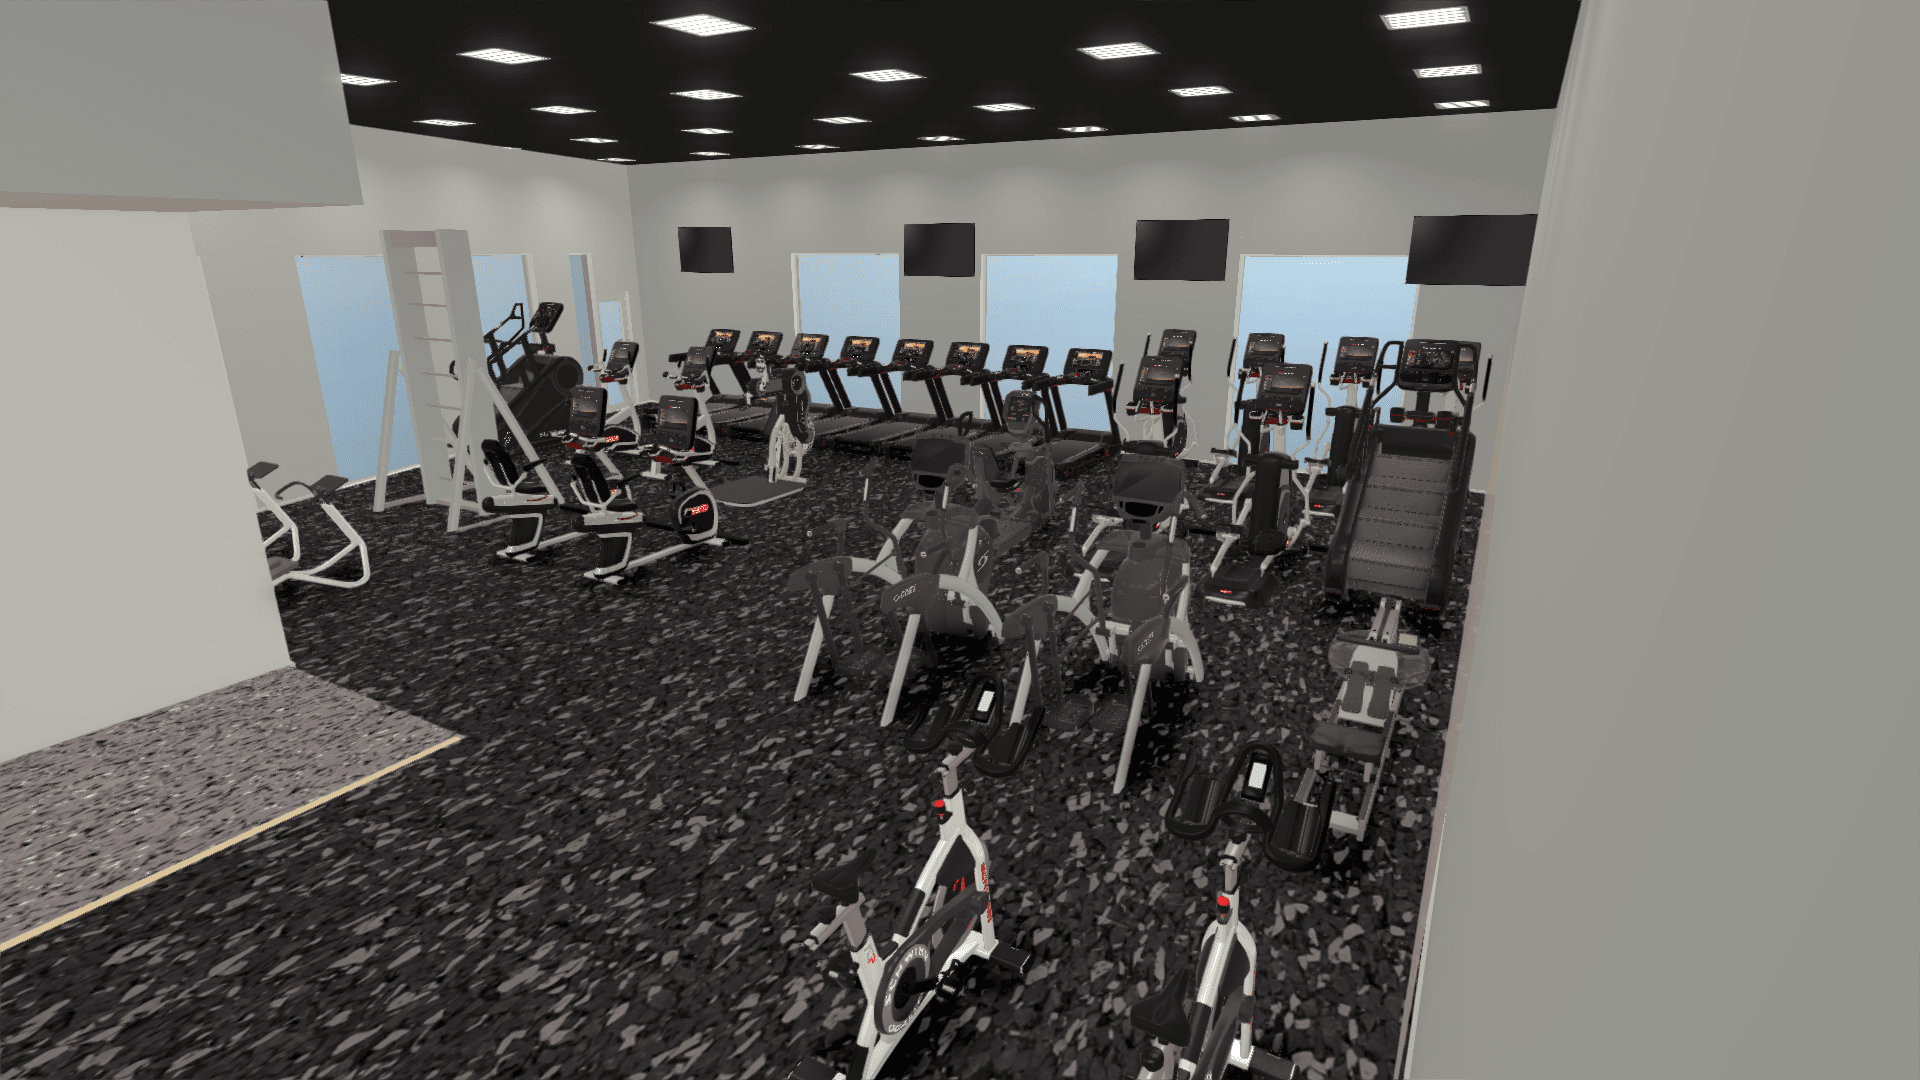 Rendering of what new cardio equipment layout will look like after it's installed.